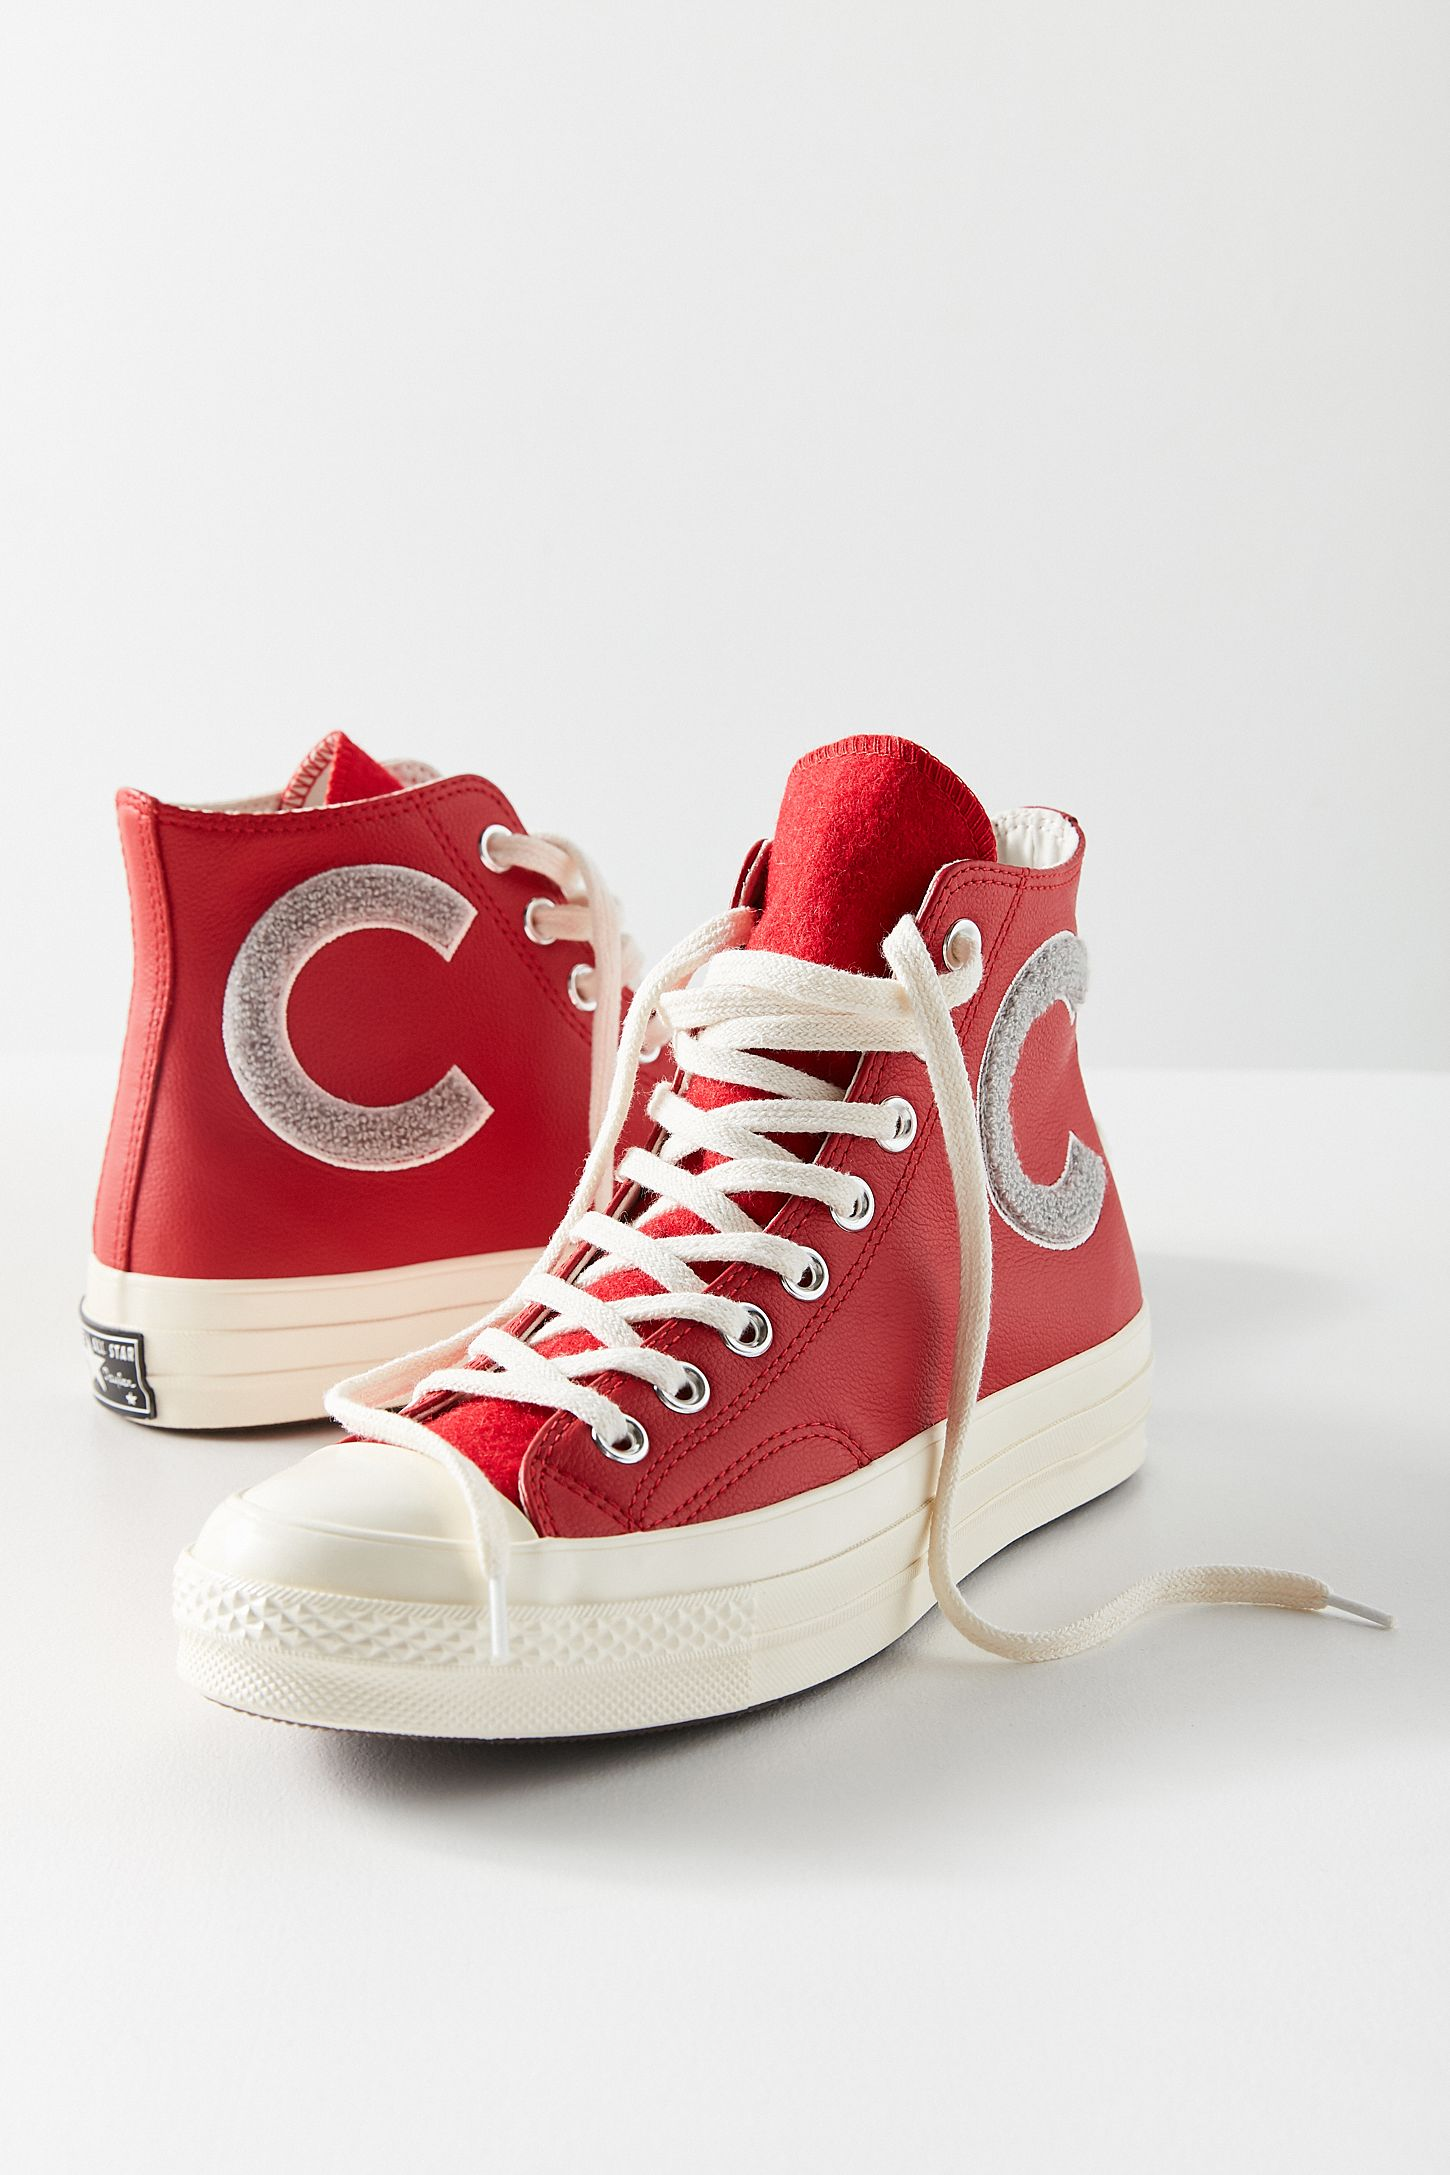 0599cb12badc Converse Chuck Taylor All Star  70 Varsity High Top Sneaker. Tap image to  zoom. Hover to zoom. Double Tap to Zoom